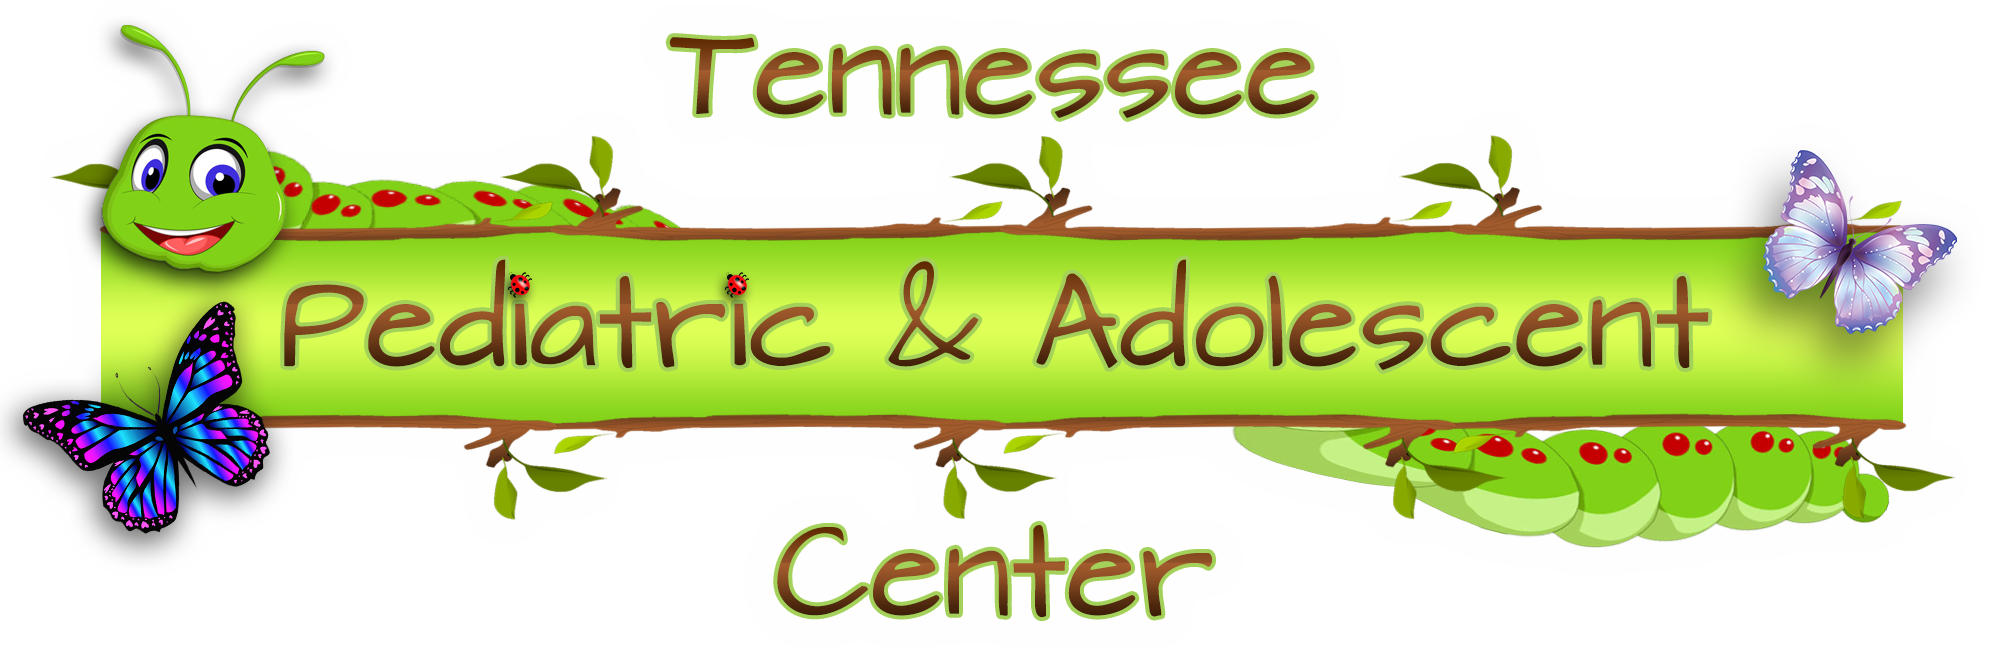 Tennessee Pediatric and Adolescent Center